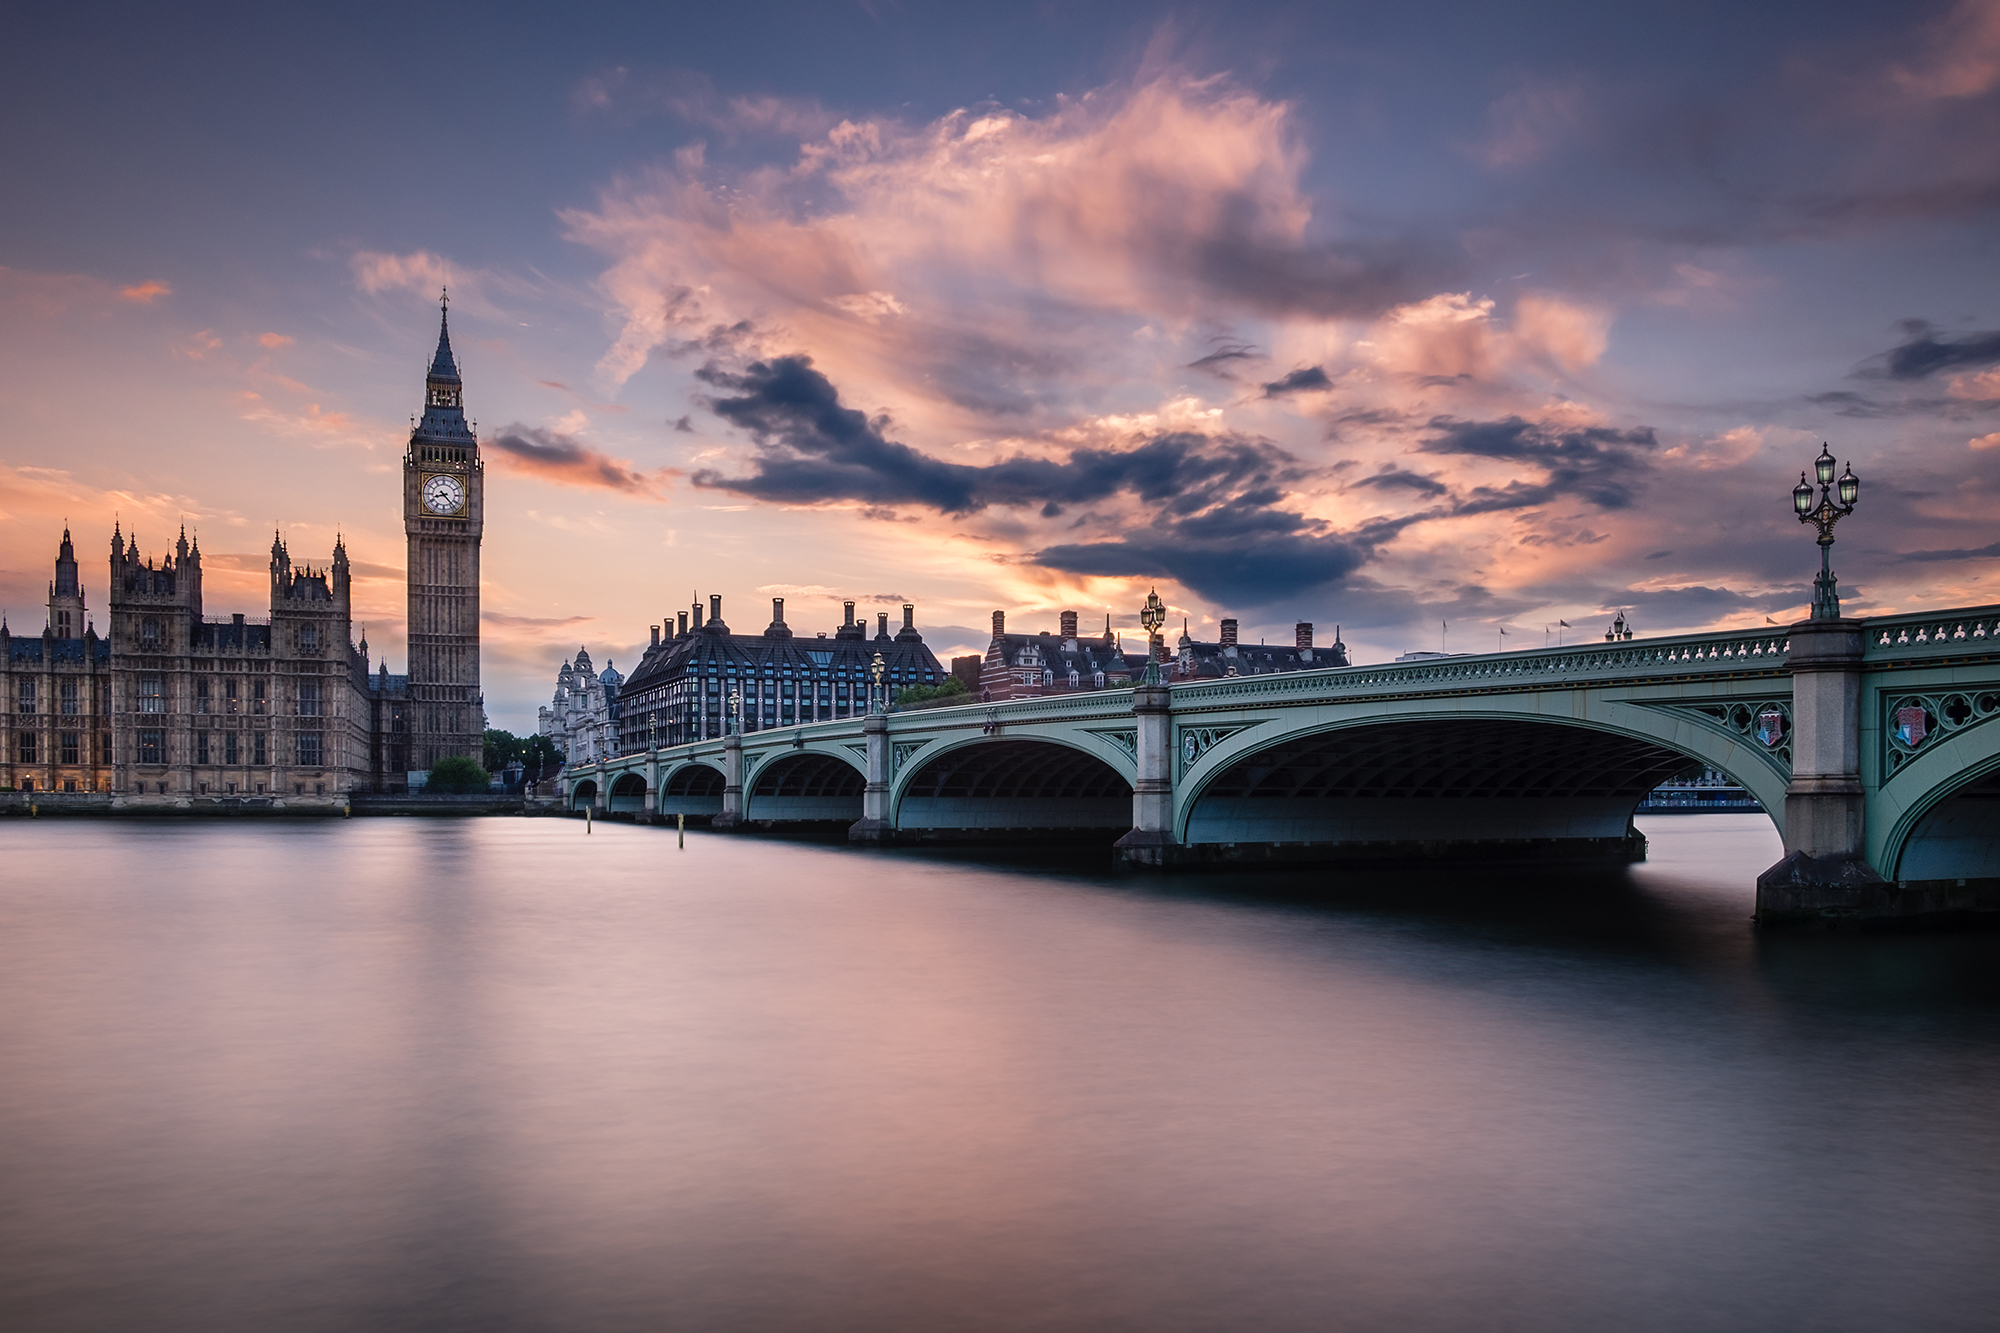 Cityscape long exposure photo at sunset of Big Ben and the Houses of Parliament, London by Trevor Sherwin